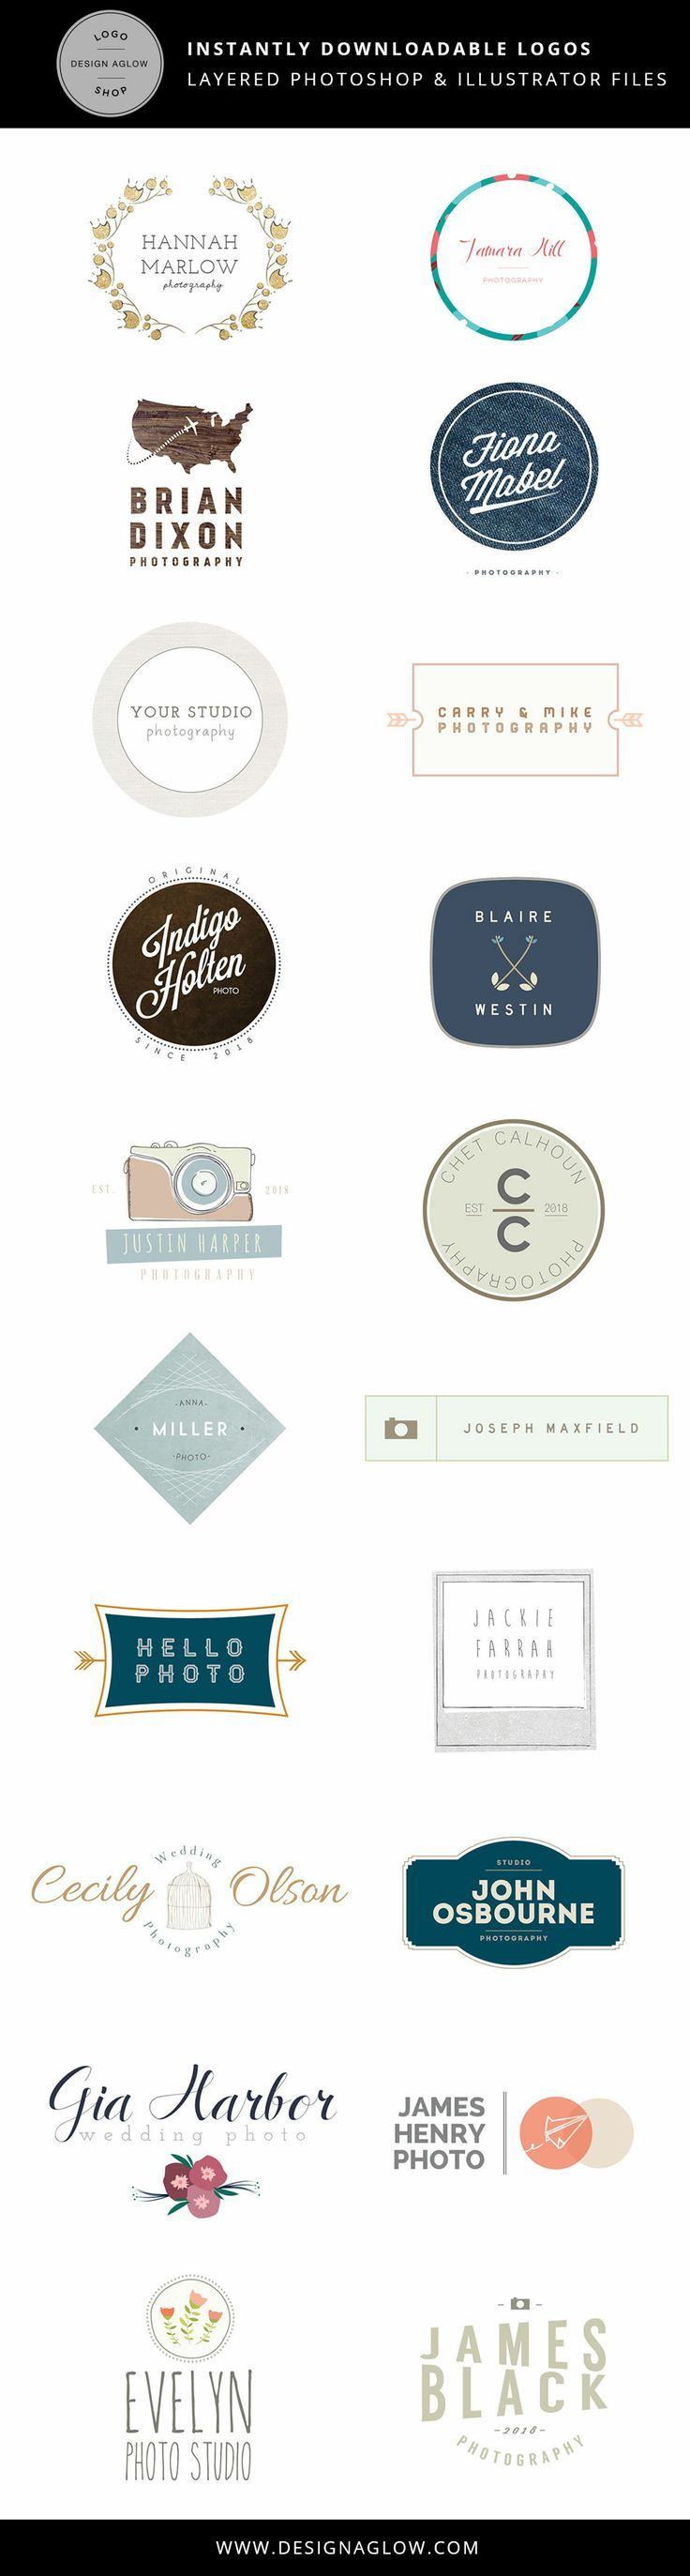 Logos for Photographers | Fully customizable Photoshop and Illustrator files! #designaglow